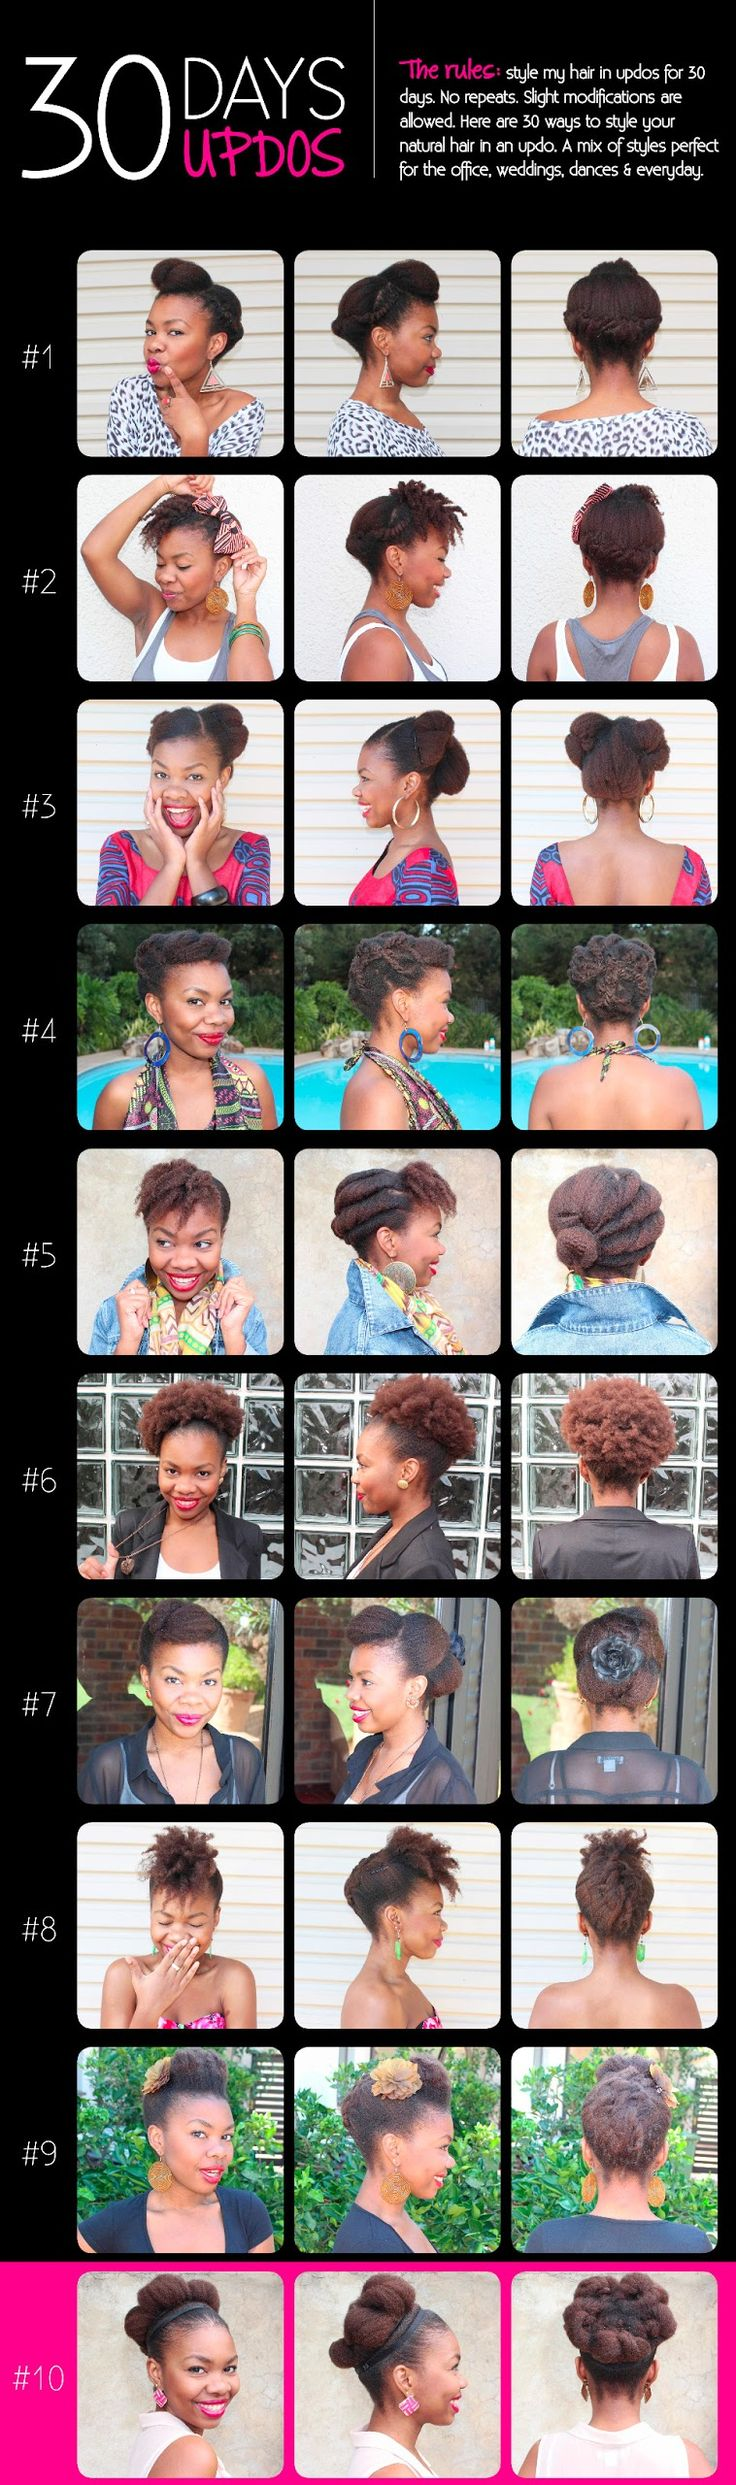 My Fro & I : A South African Natural Hair Blog: 30 Updos Days 1-10